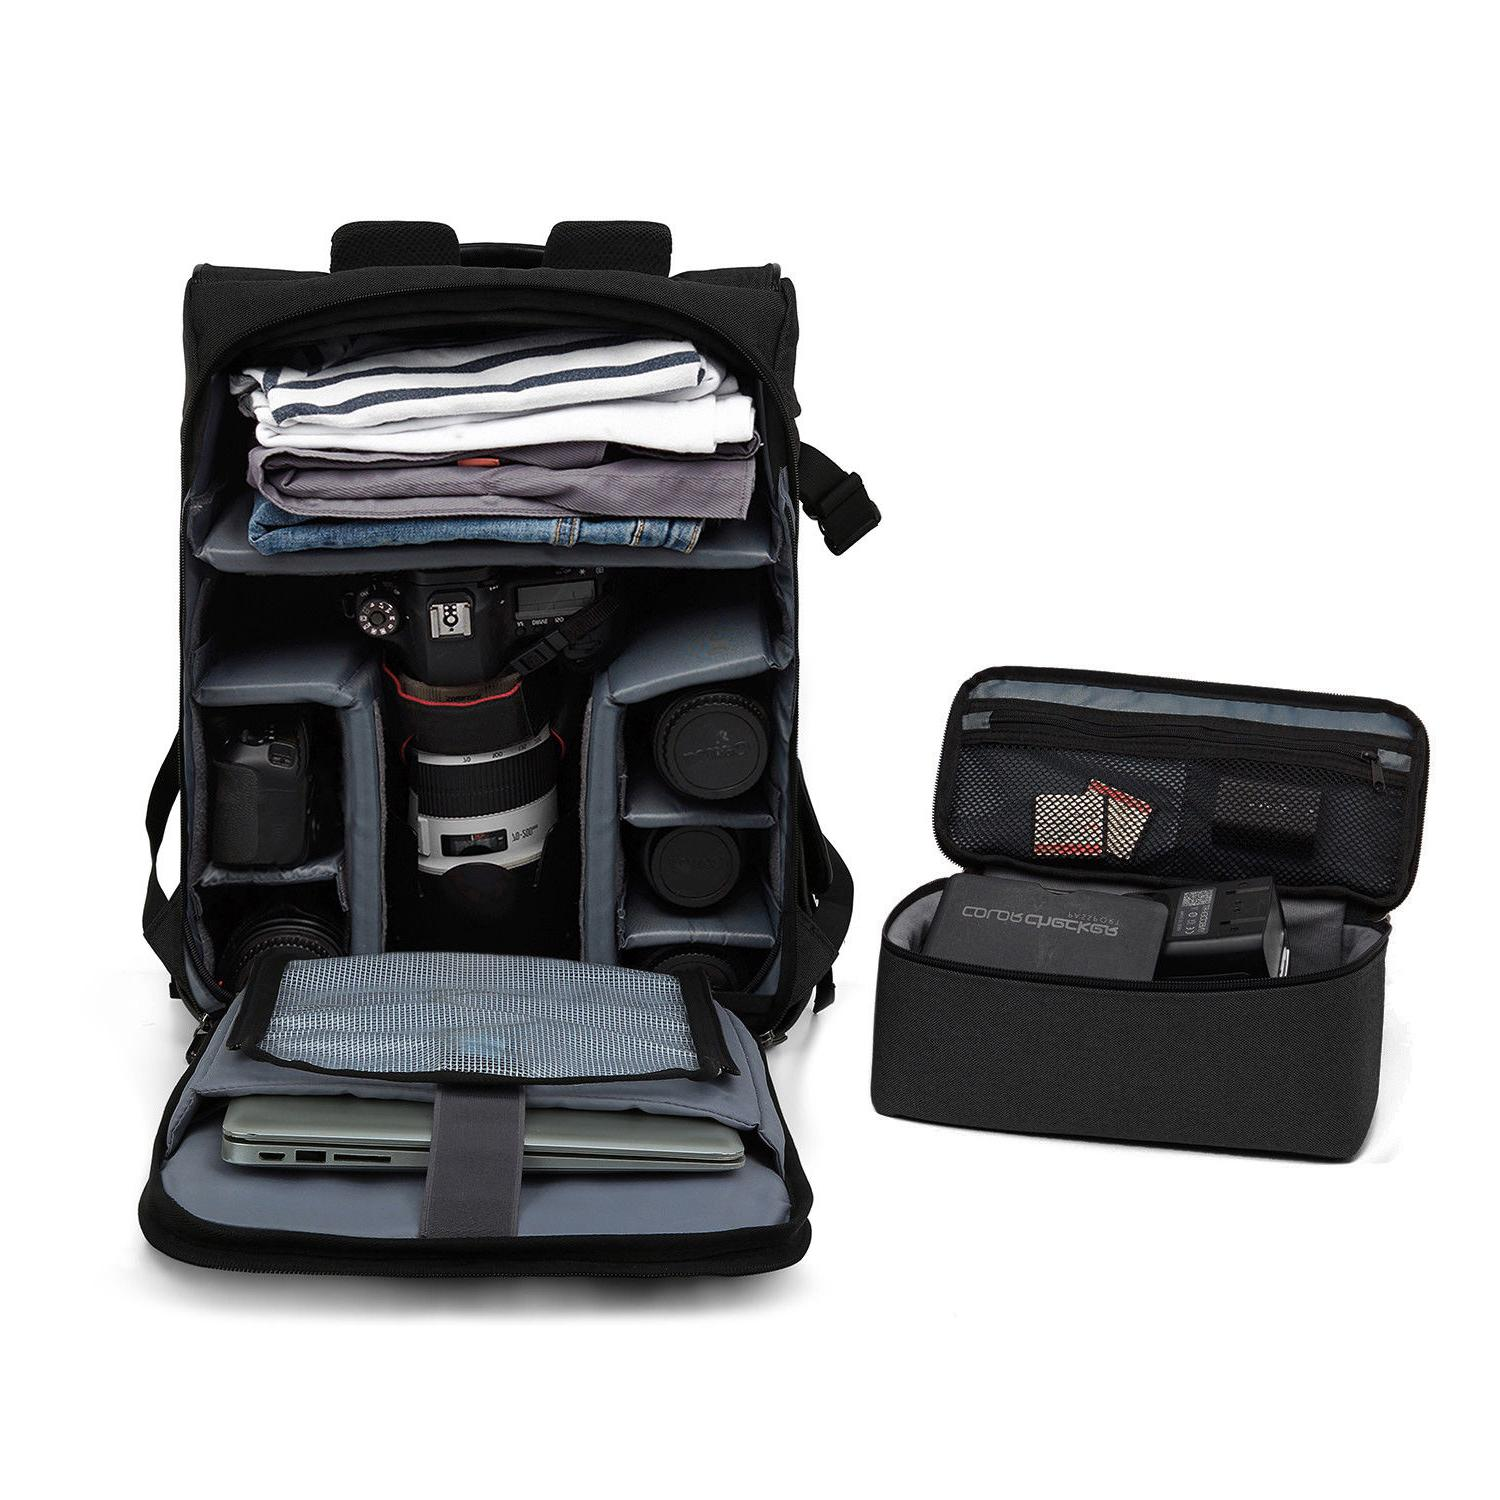 BAGSMART Photo 15.6 inches